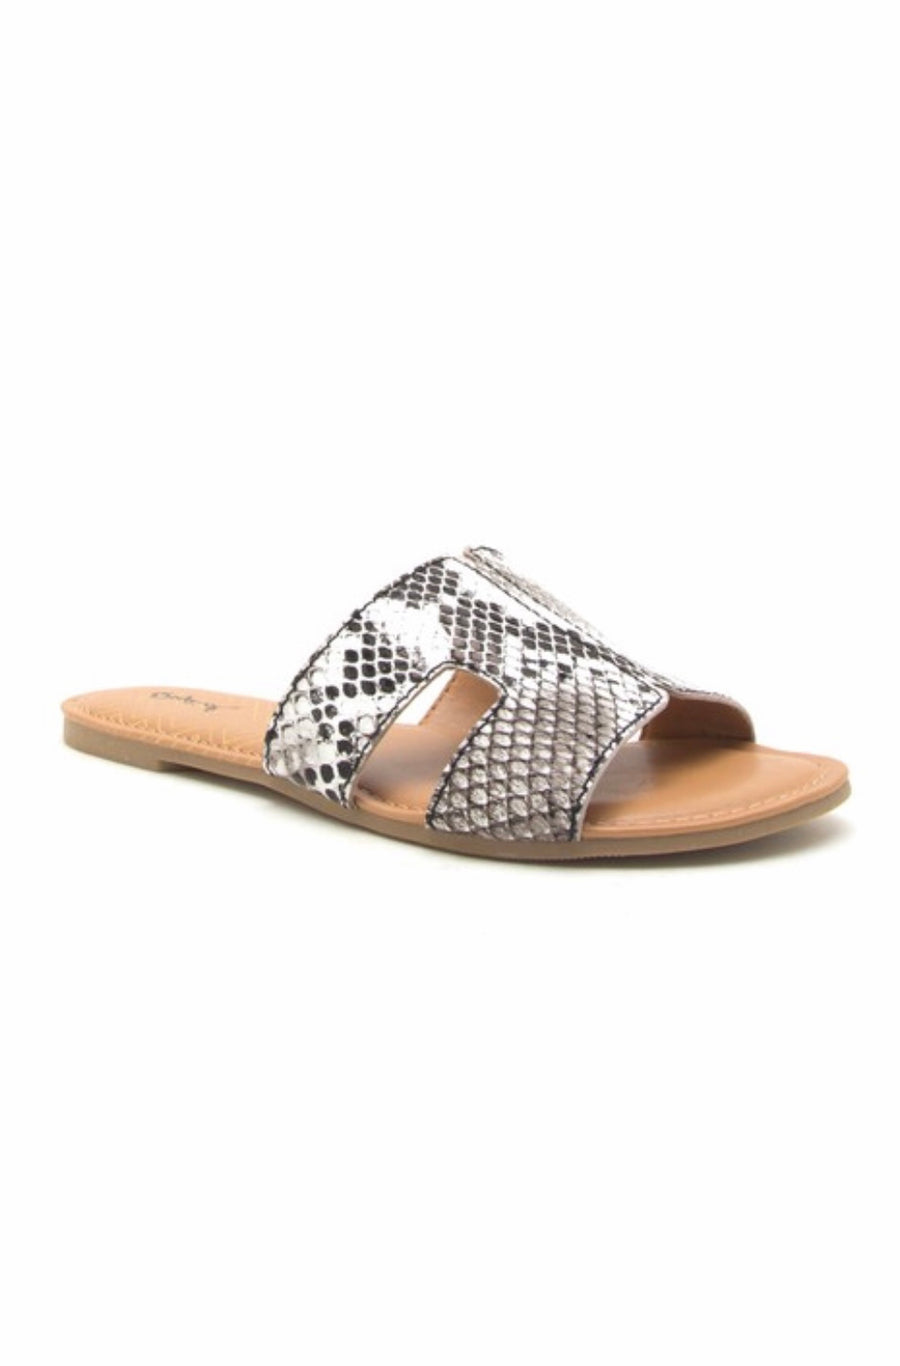 The Cutest Snakeskin Slides